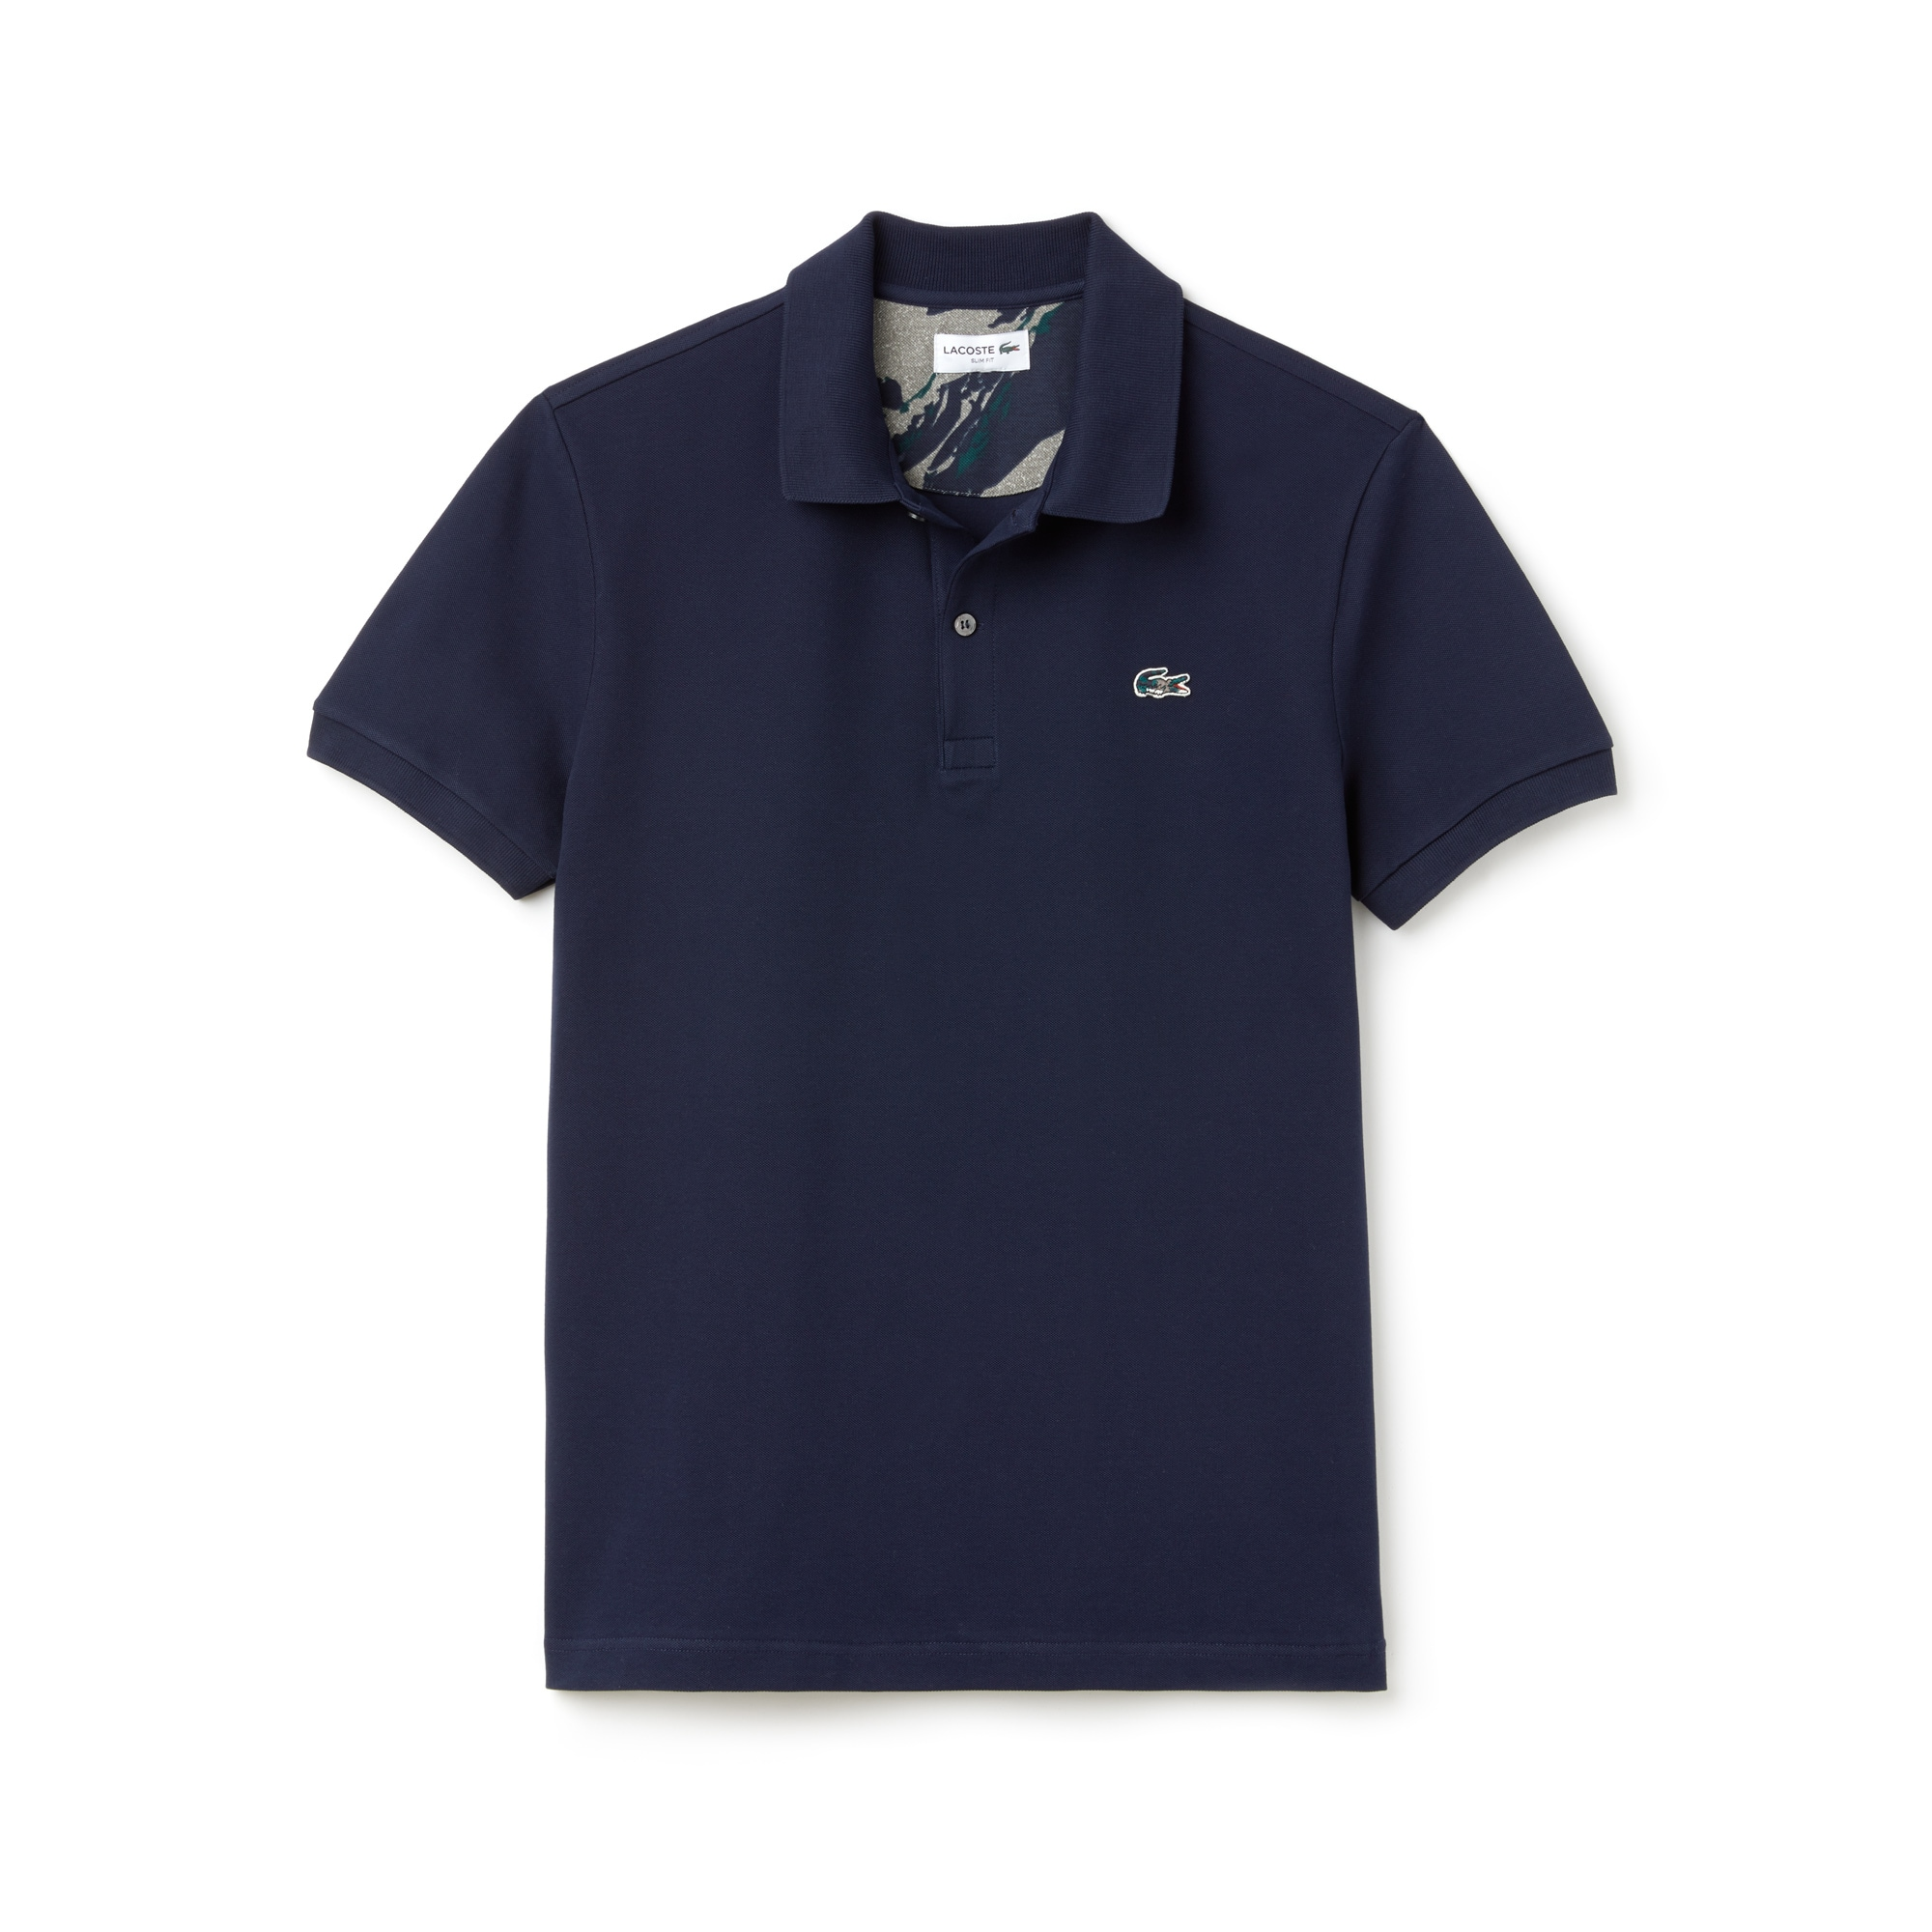 Mens 라코스테 Lacoste Slim Fit Stretch Mini Pique Polo,navy blue